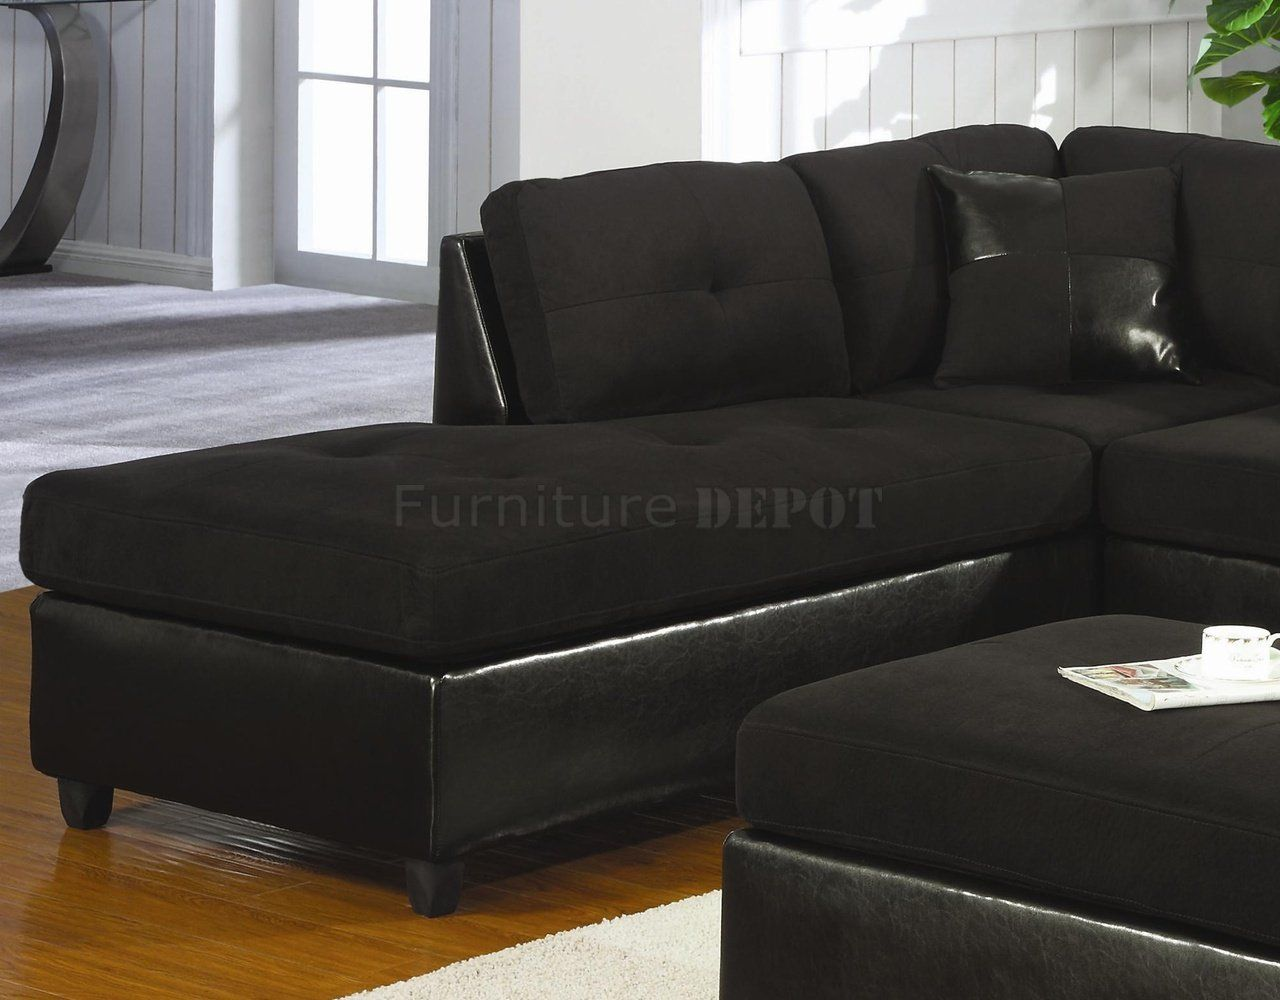 Awesome Black Suede Couch Inspirational Black Suede Couch 22 On Office Sofa Ideas With Black Suede Couch Leather Couch Decorating Sectional Couch Couch Decor